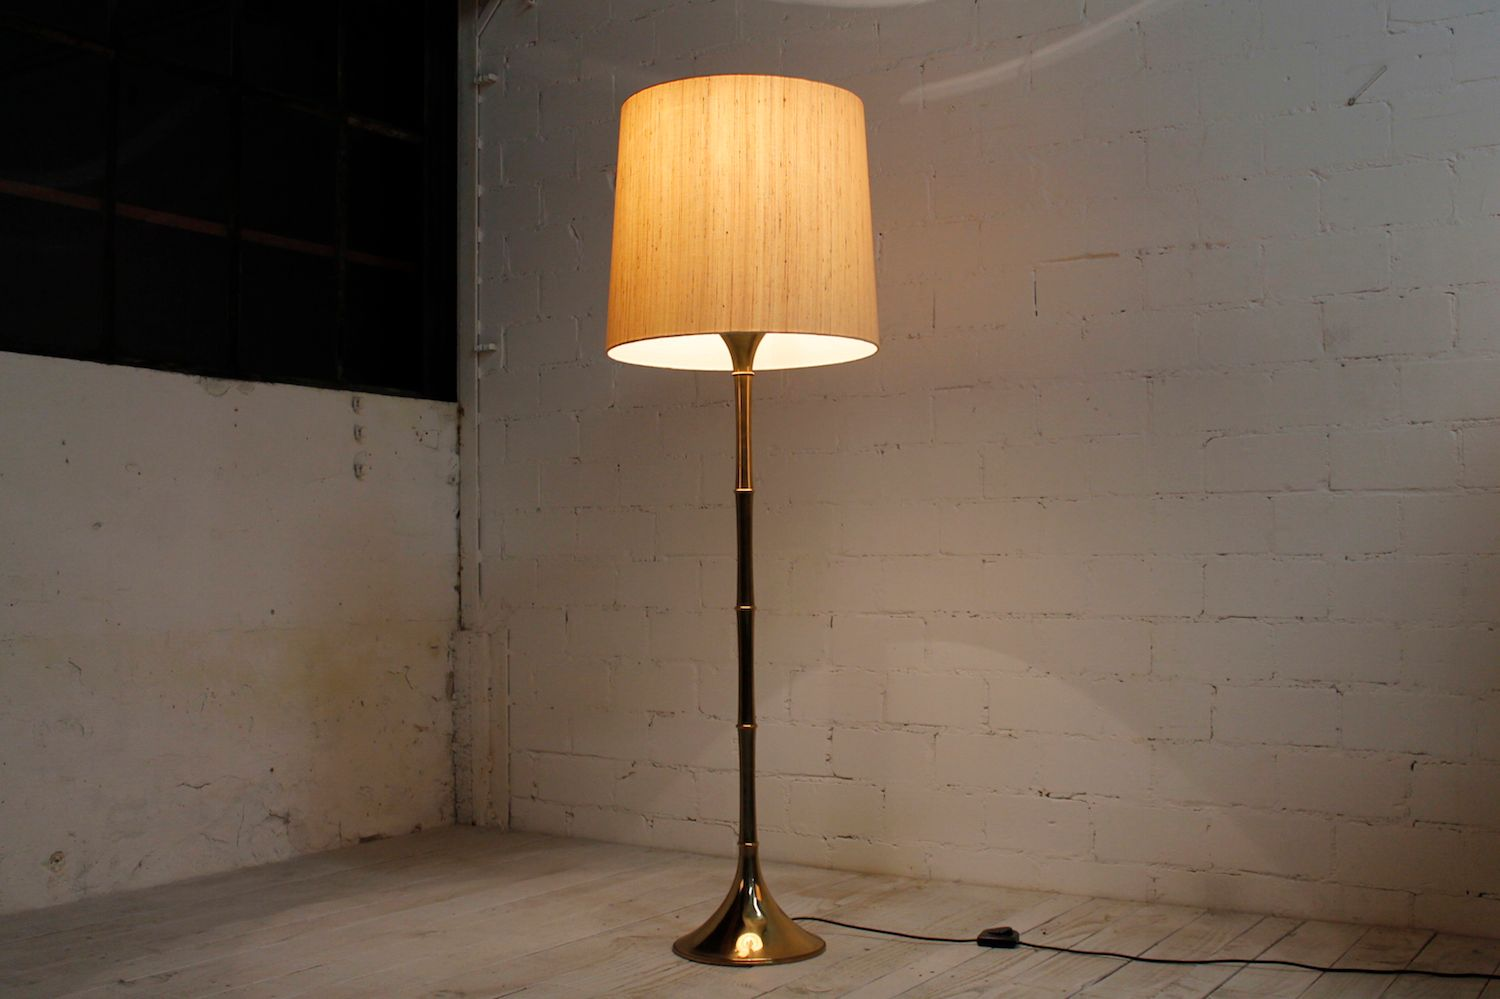 Vintage Bamboo Floor Lamp by Ingo Maurer for sale at Pamono